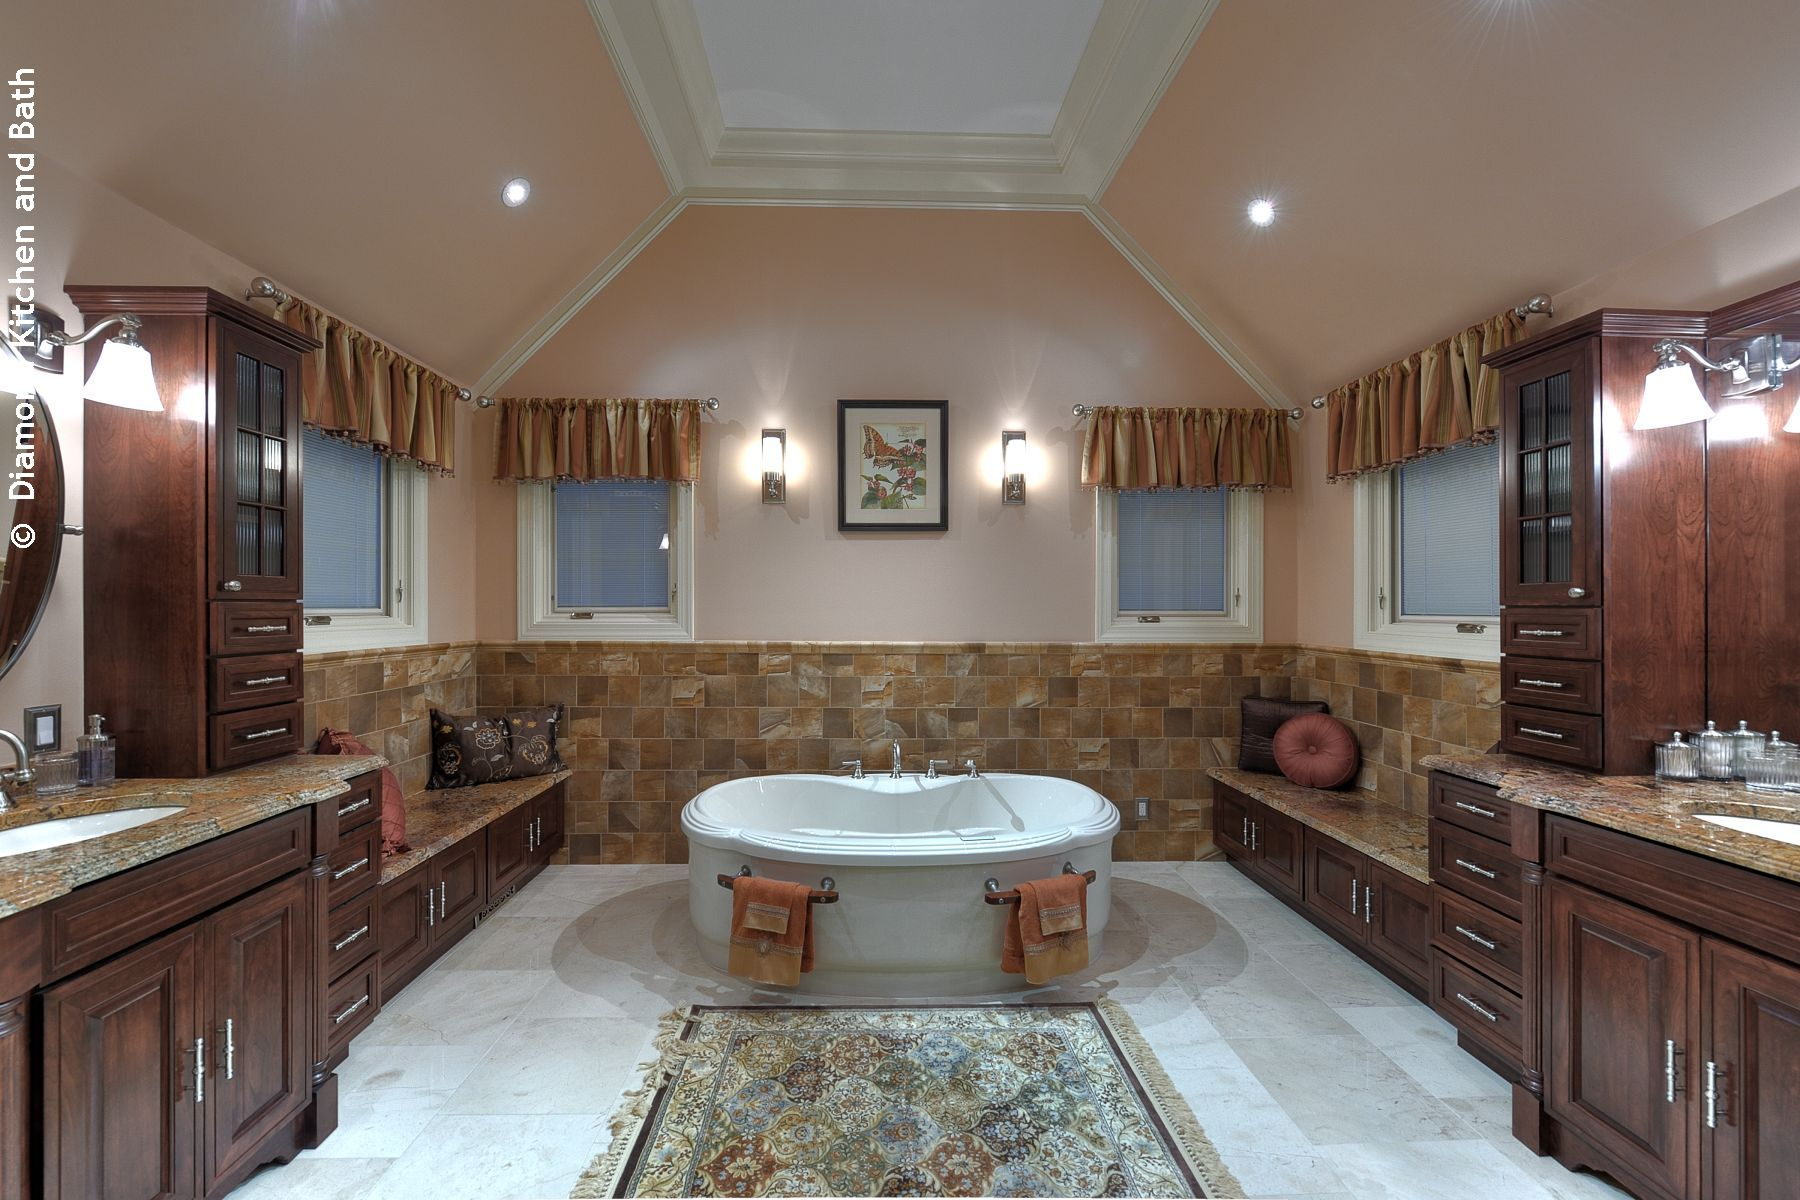 Bathroom Remodeling Virtual Tour in Newtown, PA